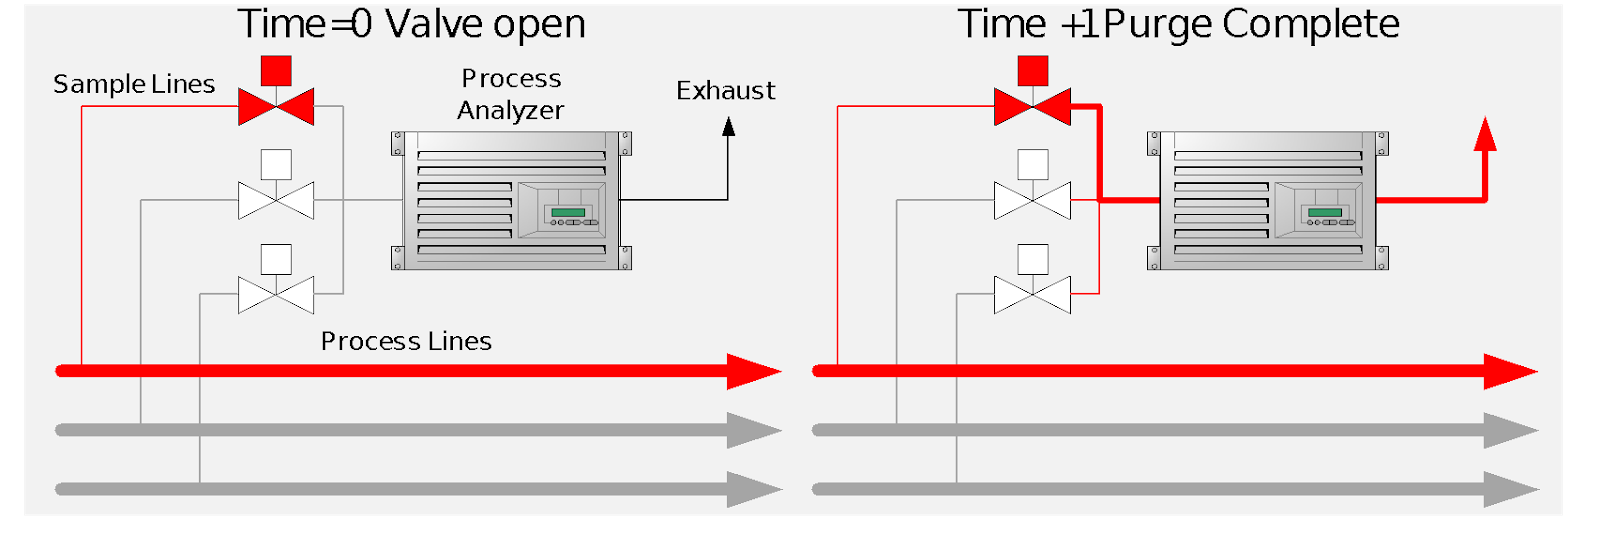 Delay in Sampling Systems